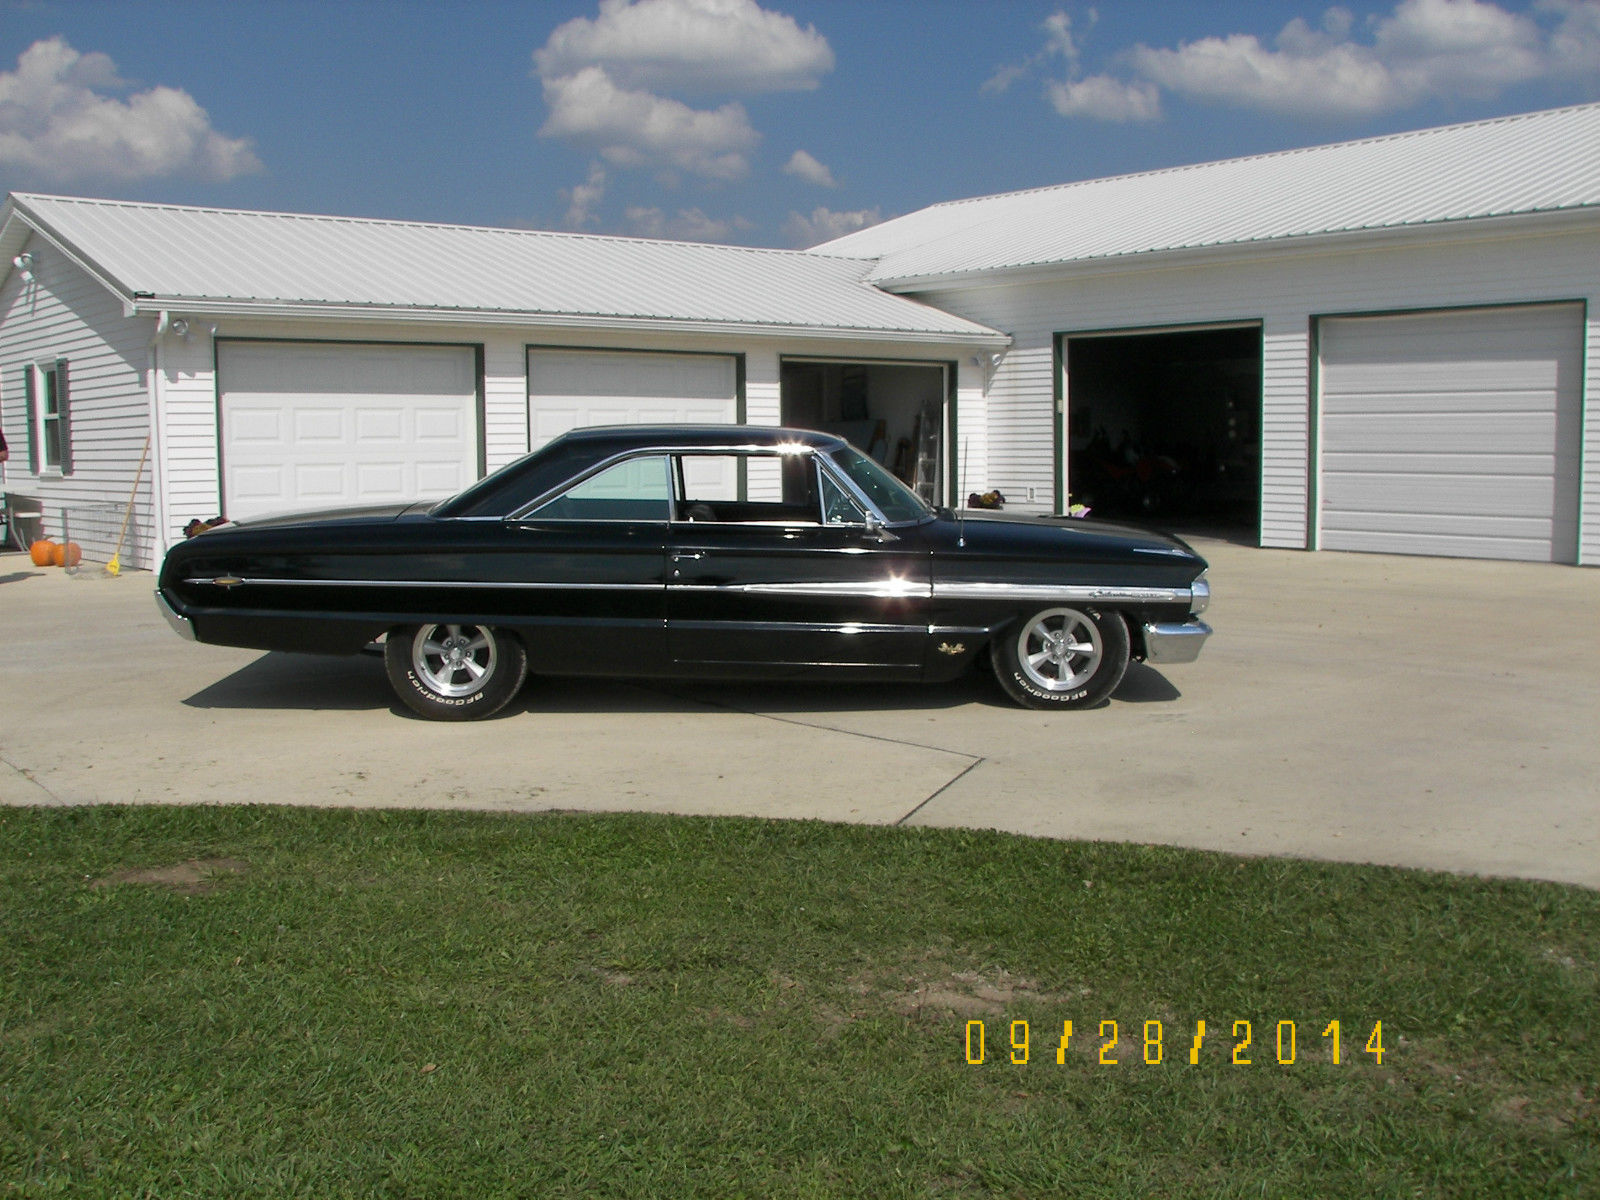 1964 galaxie 500 xl 427 4spd no reserve classic ford galaxie 1964 for sale. Black Bedroom Furniture Sets. Home Design Ideas